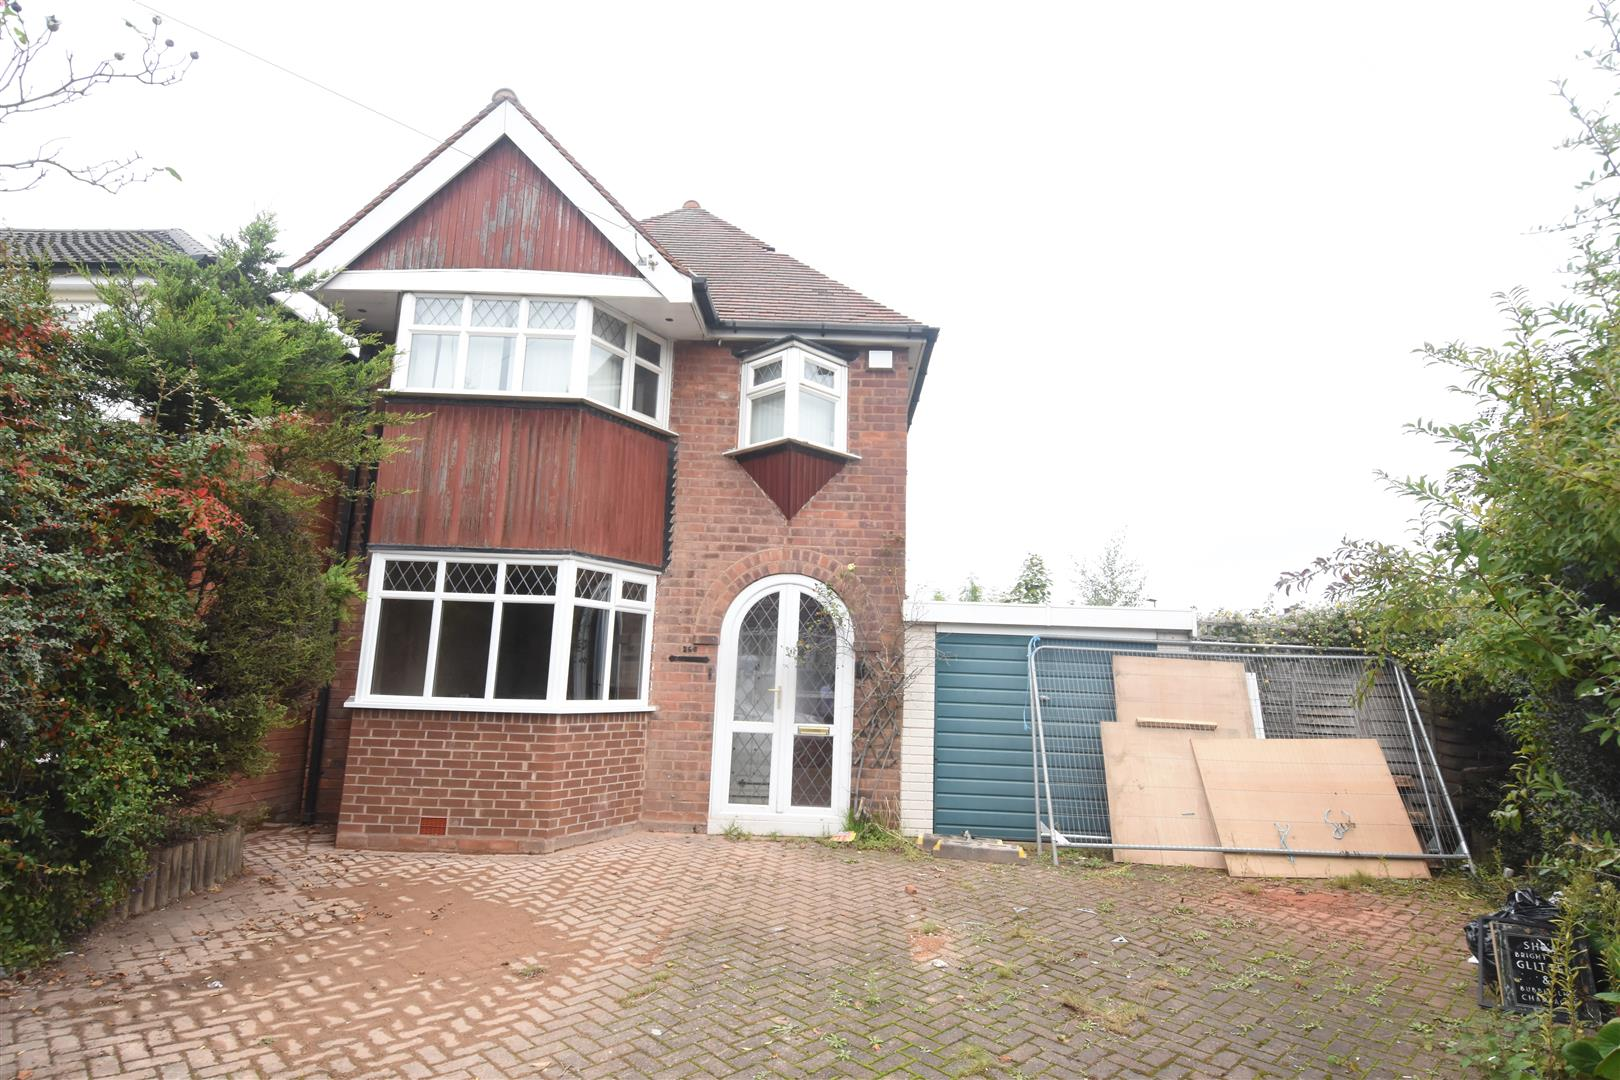 3 bed house for sale in St. Margarets Road, Ward End, Birmingham, B8